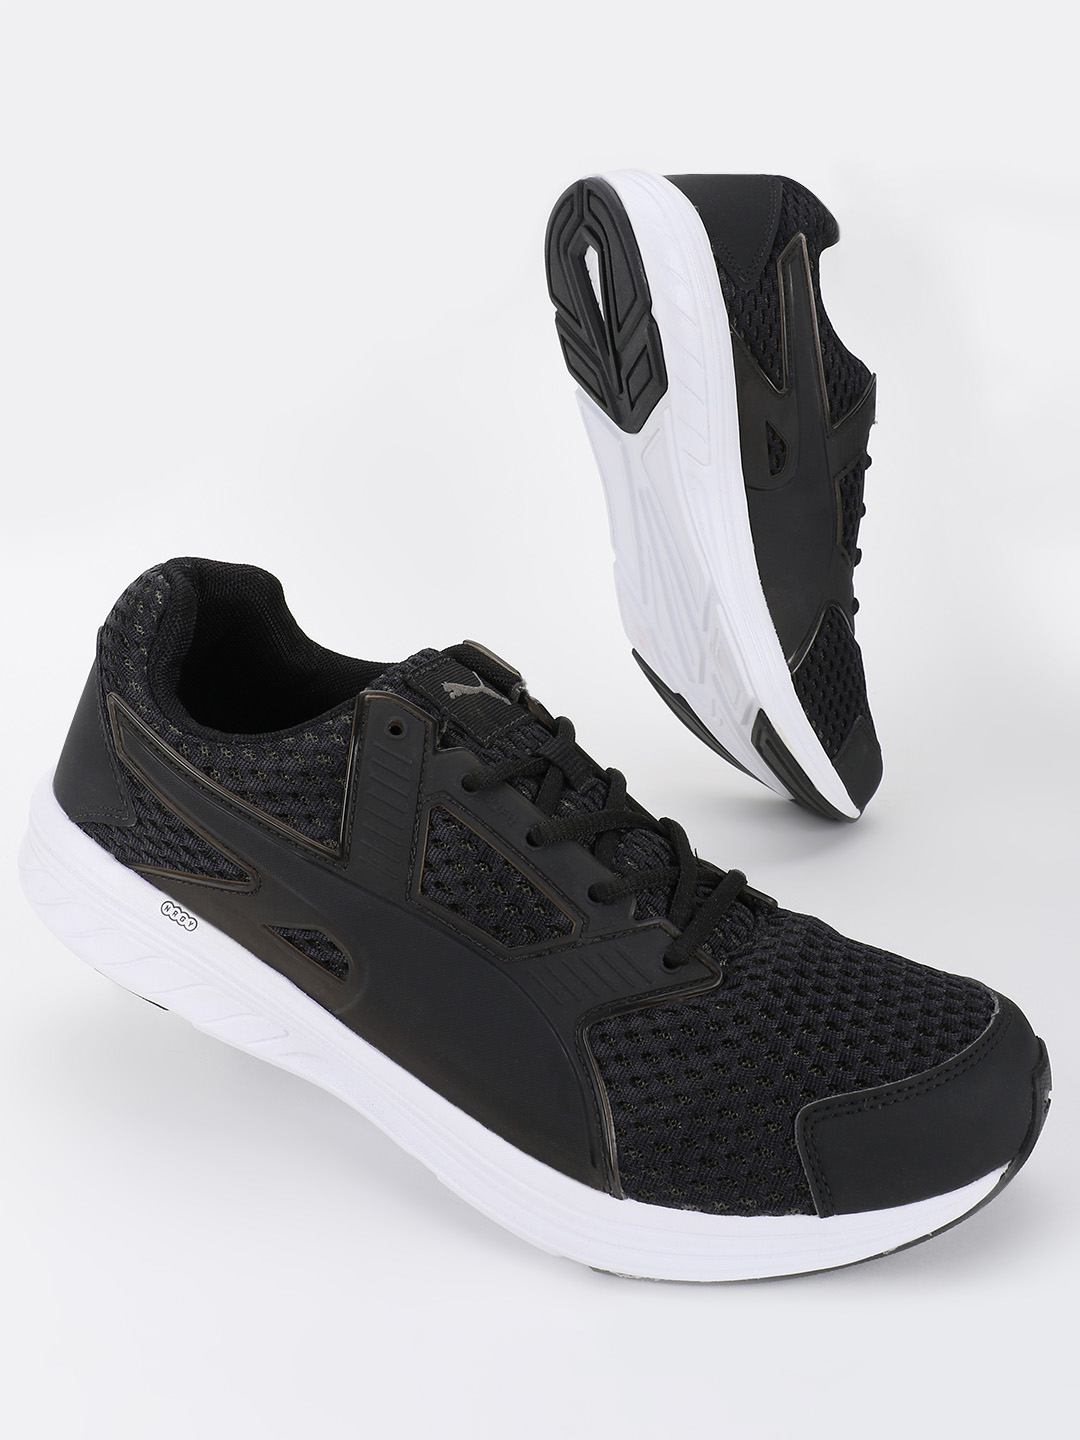 Buy Puma Black NRGY Driver IDP Shoes for Men Online in India